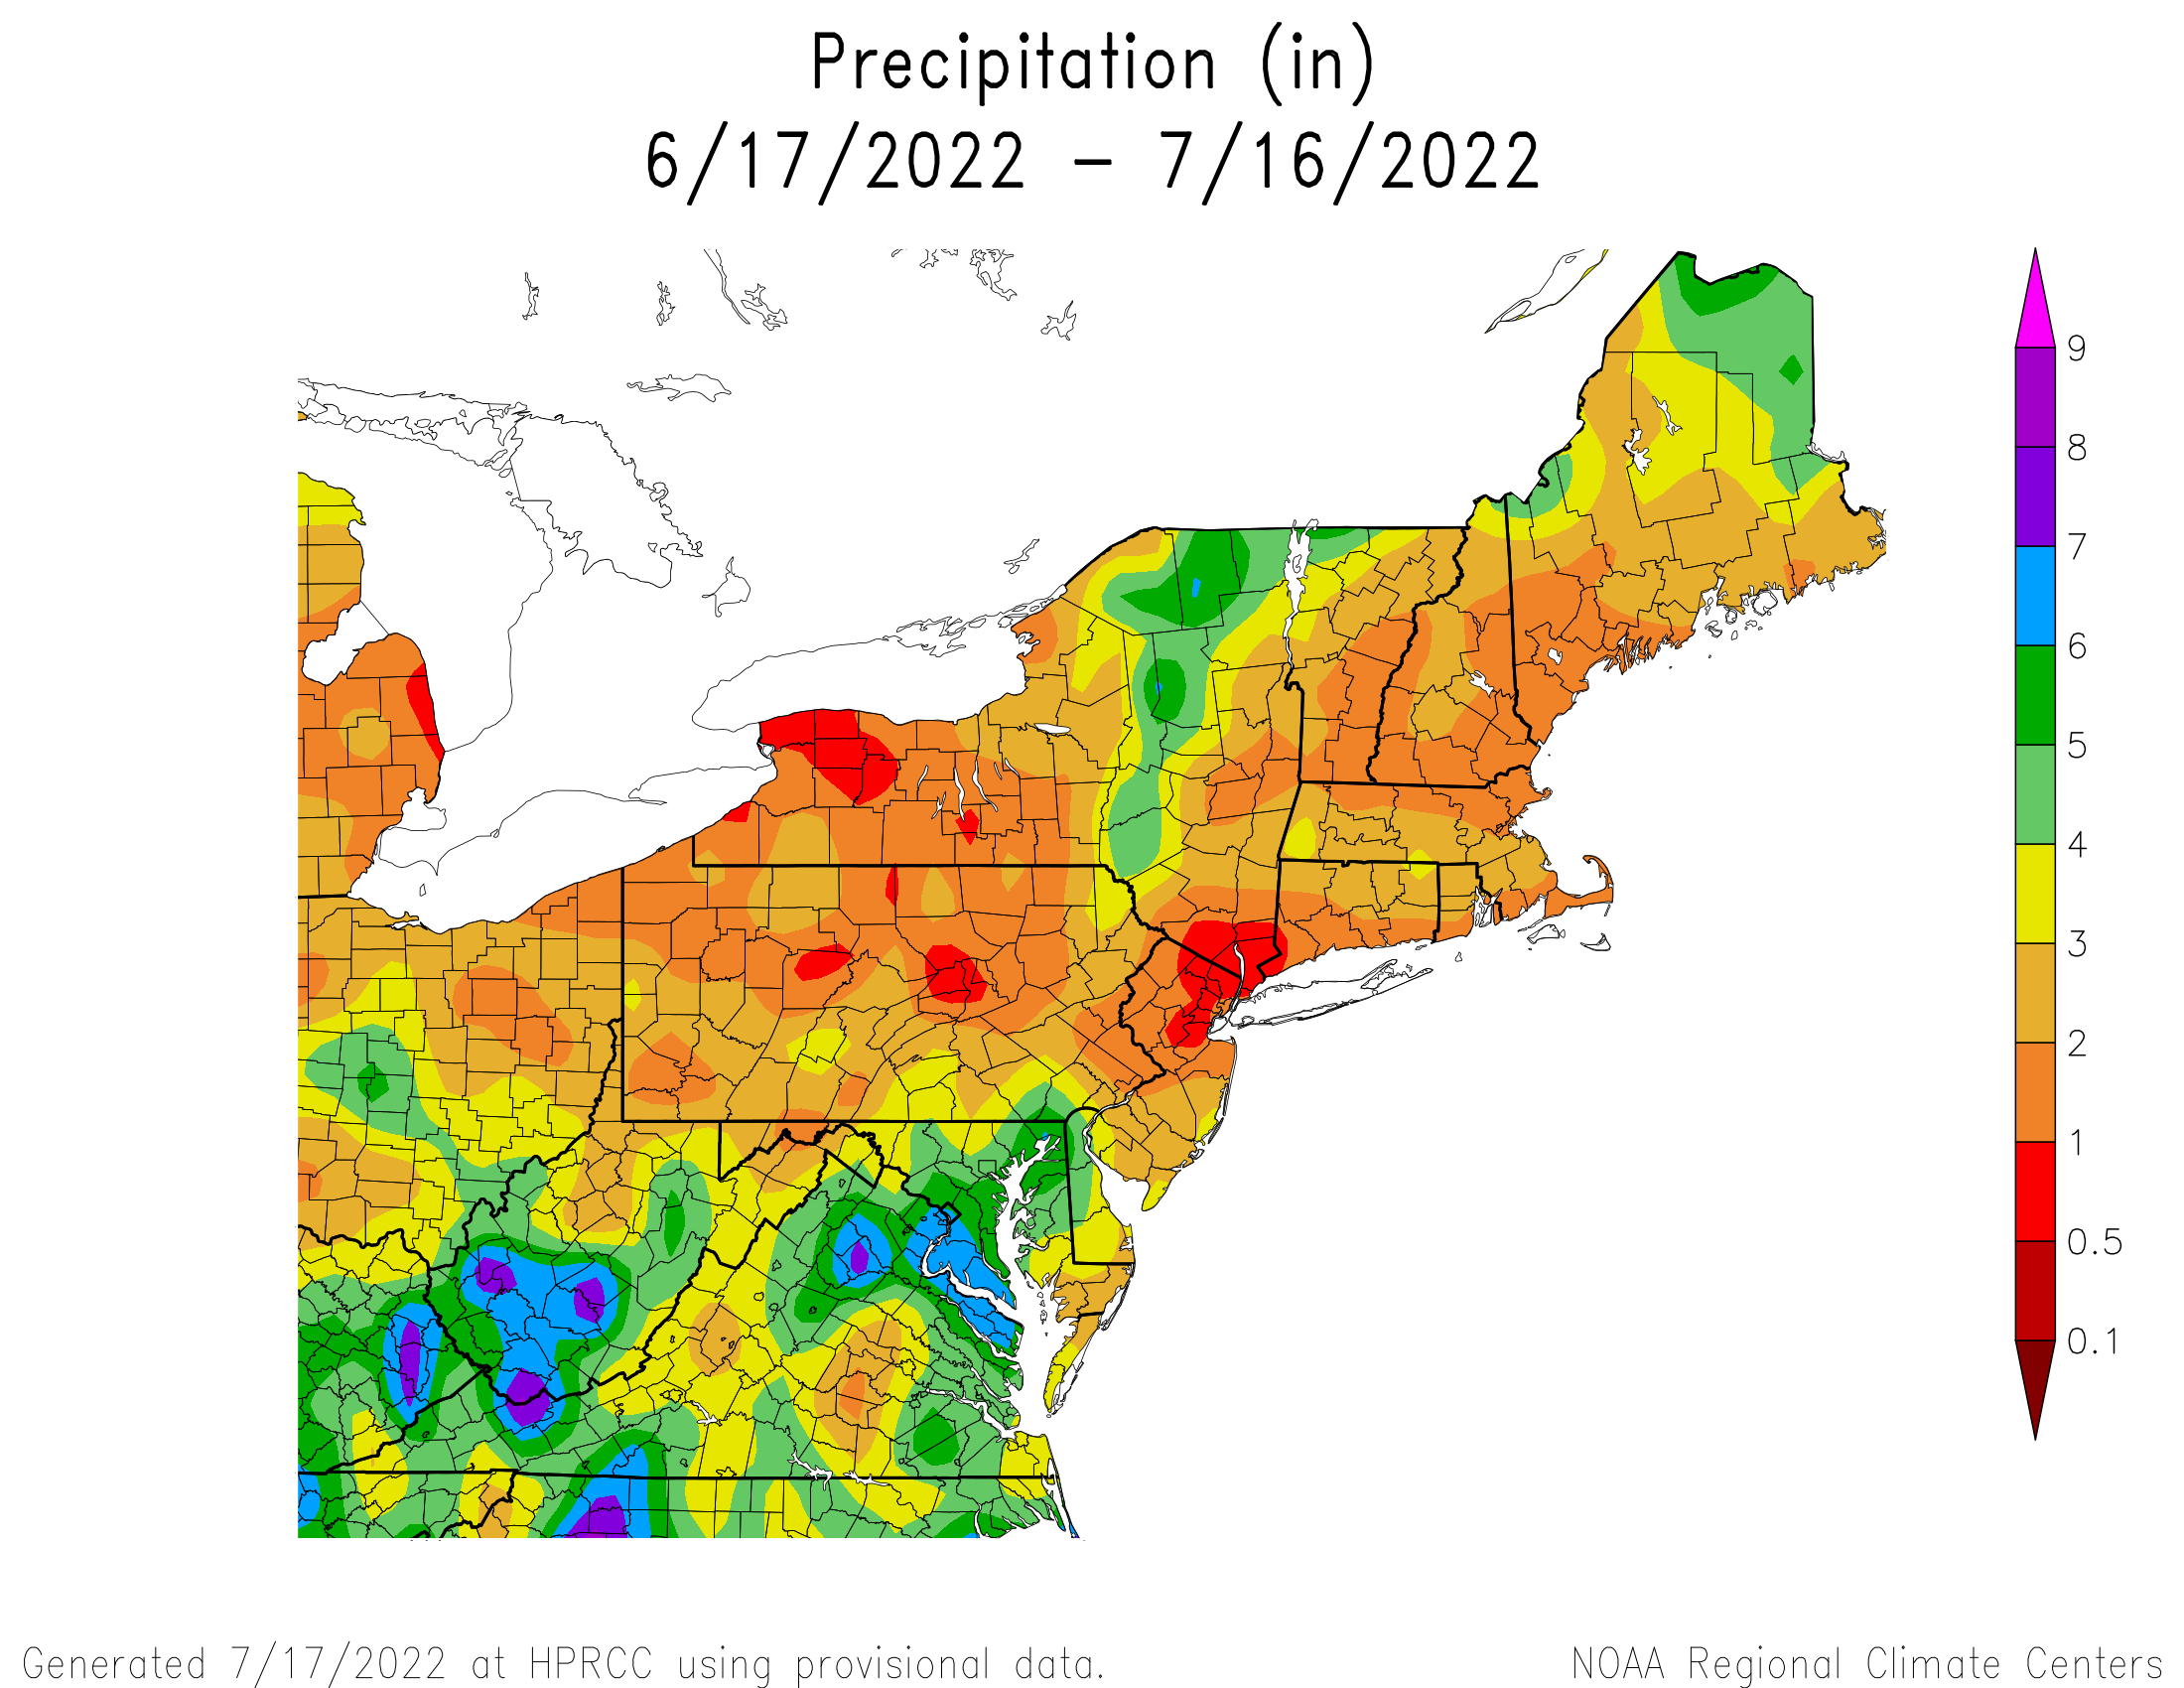 30-Day Total Precipitation